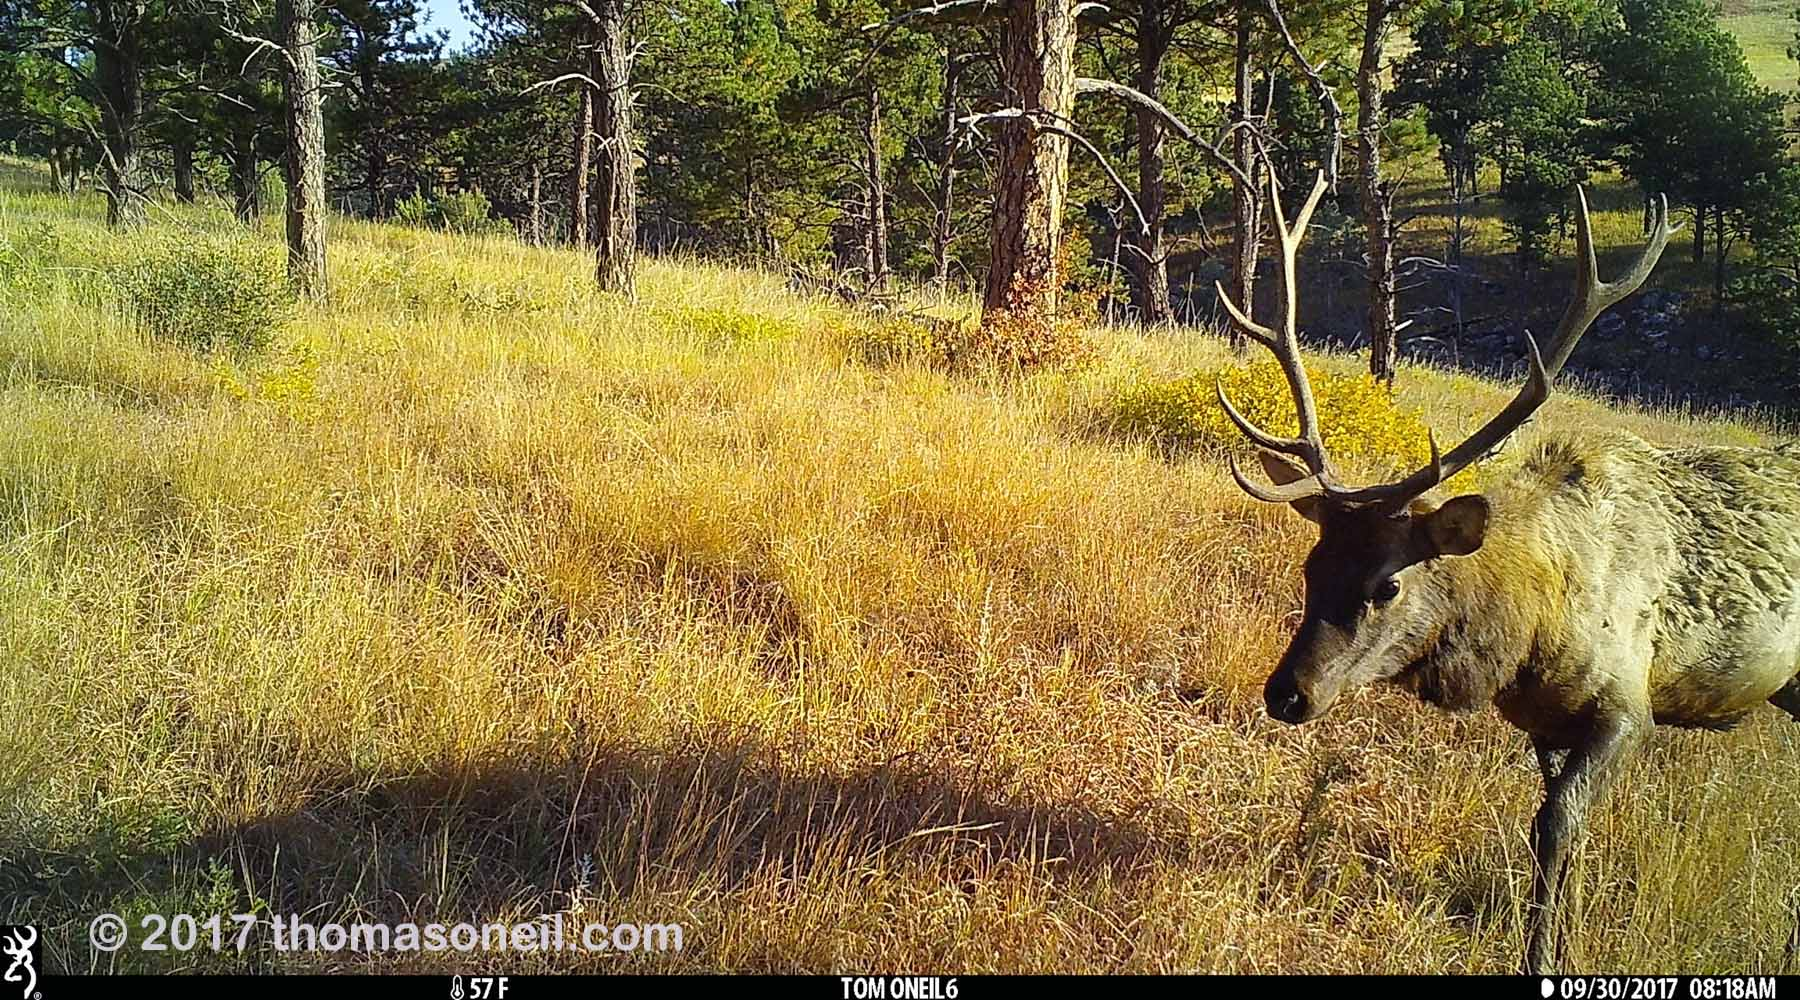 One of the few images I got from the Browning trailcam before it was destroyed, Wind Cave National Park.